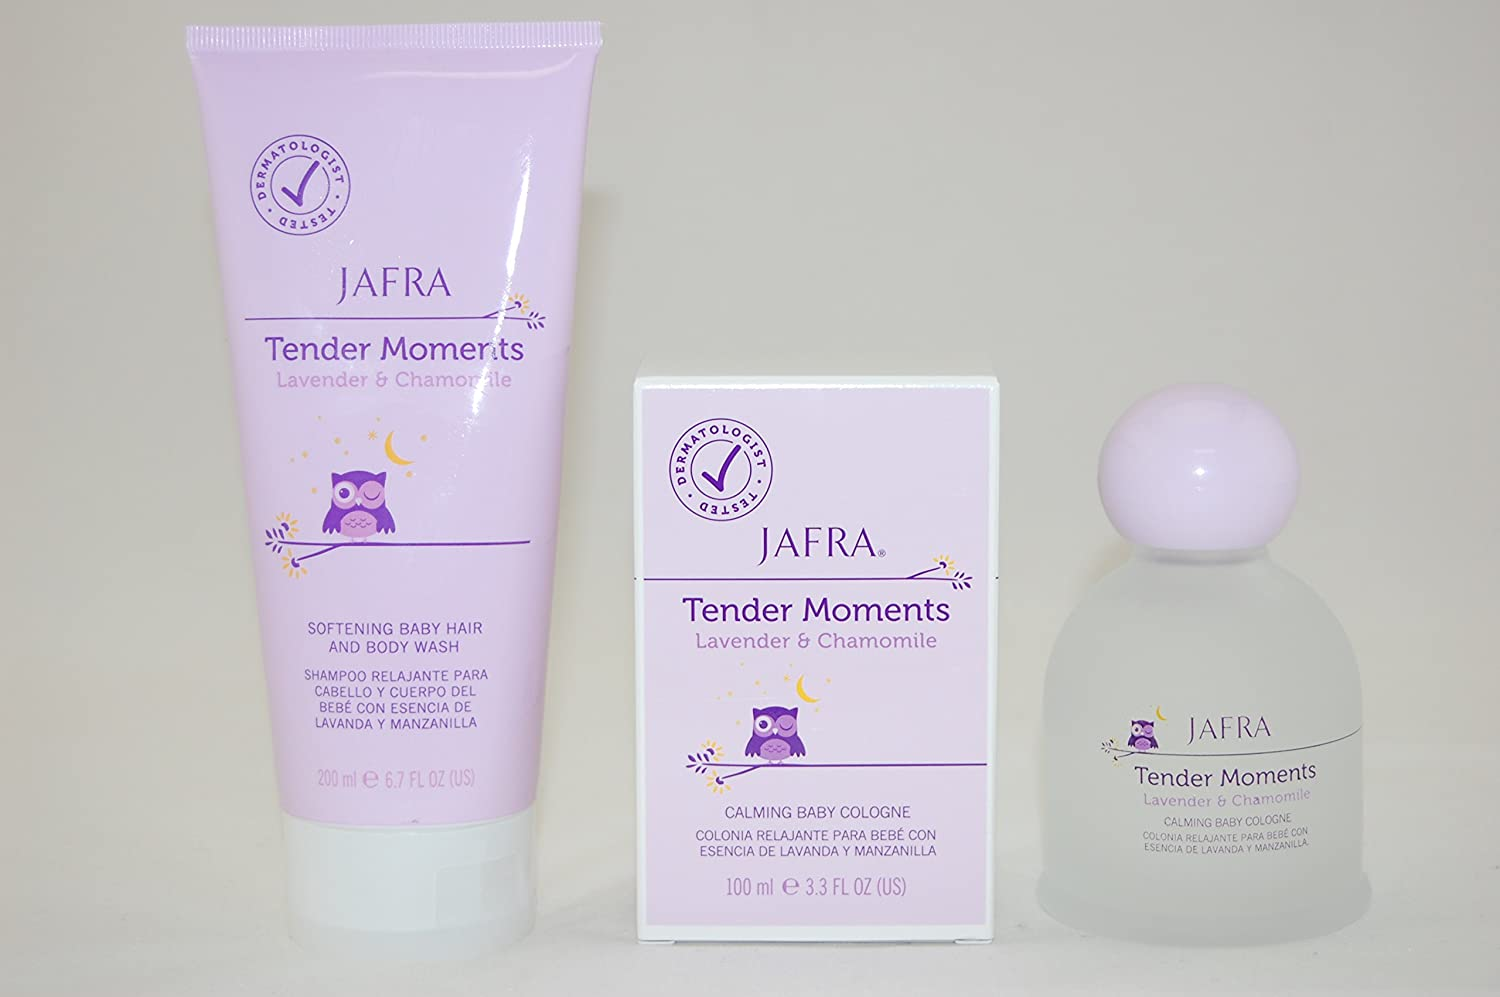 Jafra Tender Moments Lavender And Chamomile Set Beauty Spa